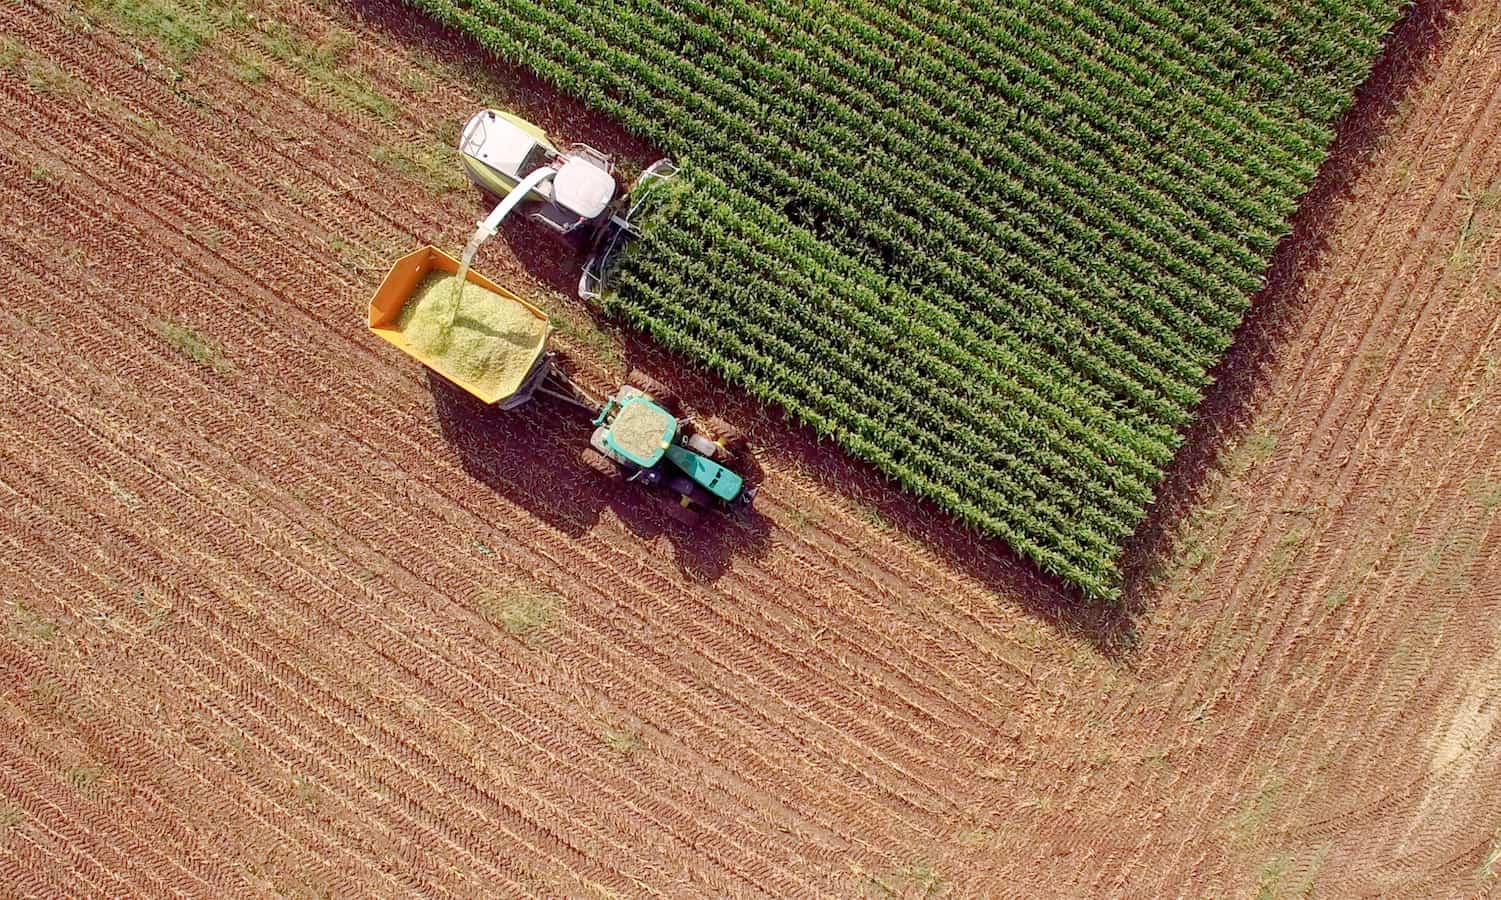 In response to a possible 20 percent import tariff, Mexican officials and business groups look for agricultural trading partners beyond the U.S.